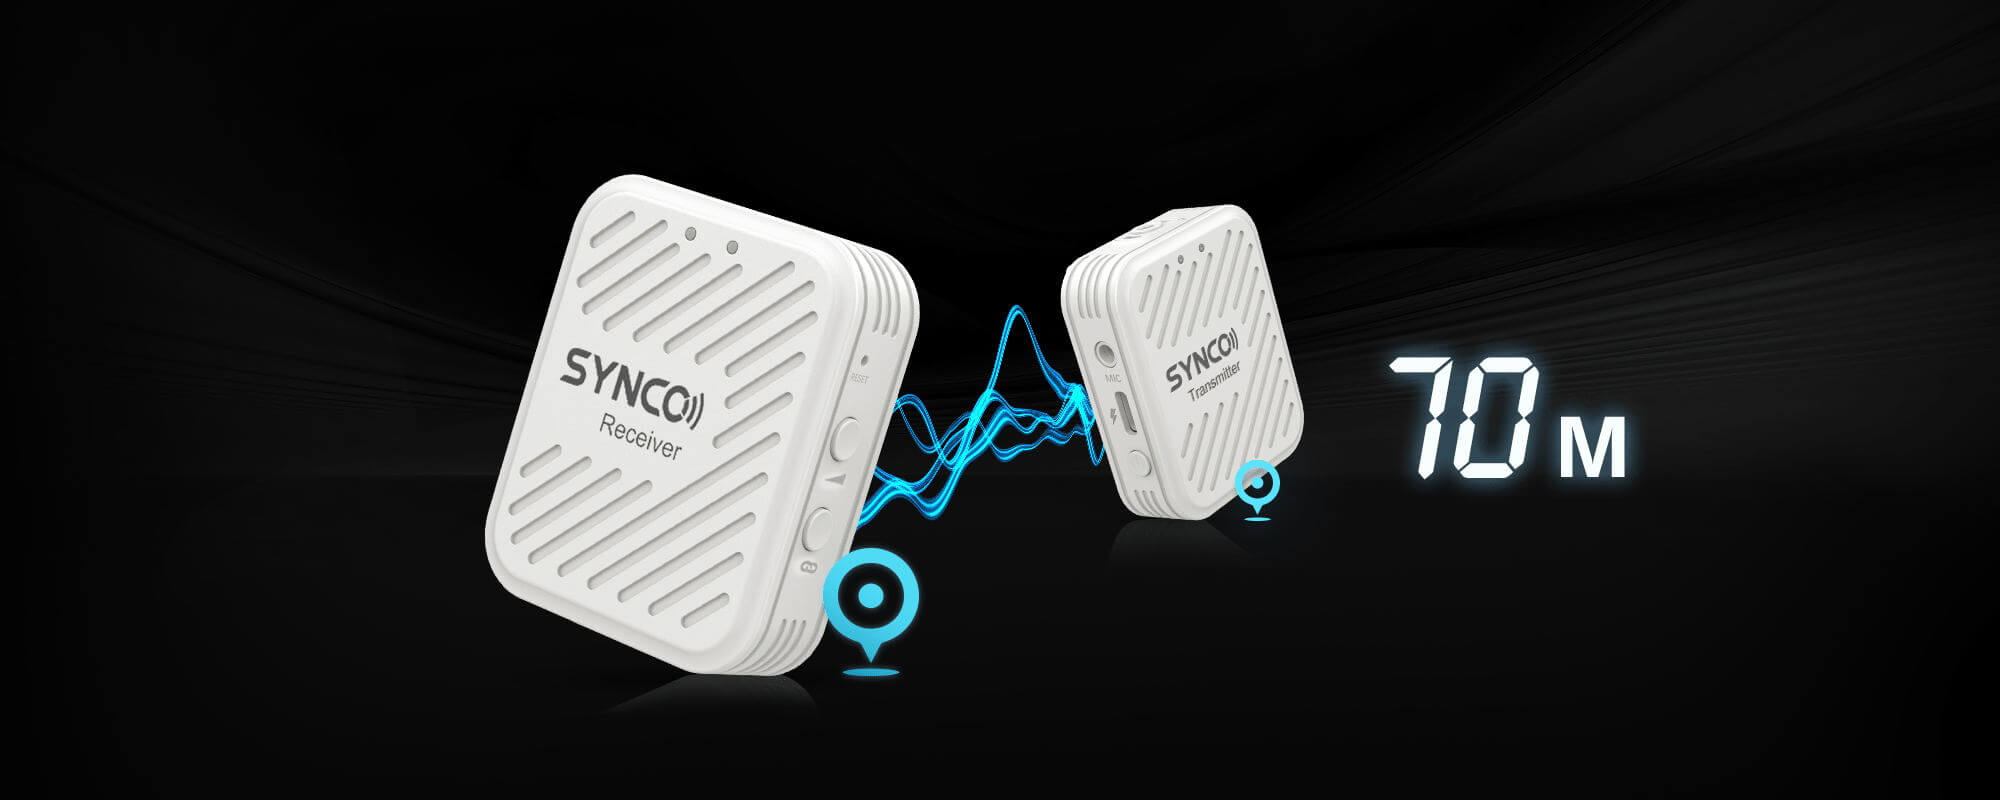 SYNCO G1(A1) Steady Transmission Even When the Distance is 150m